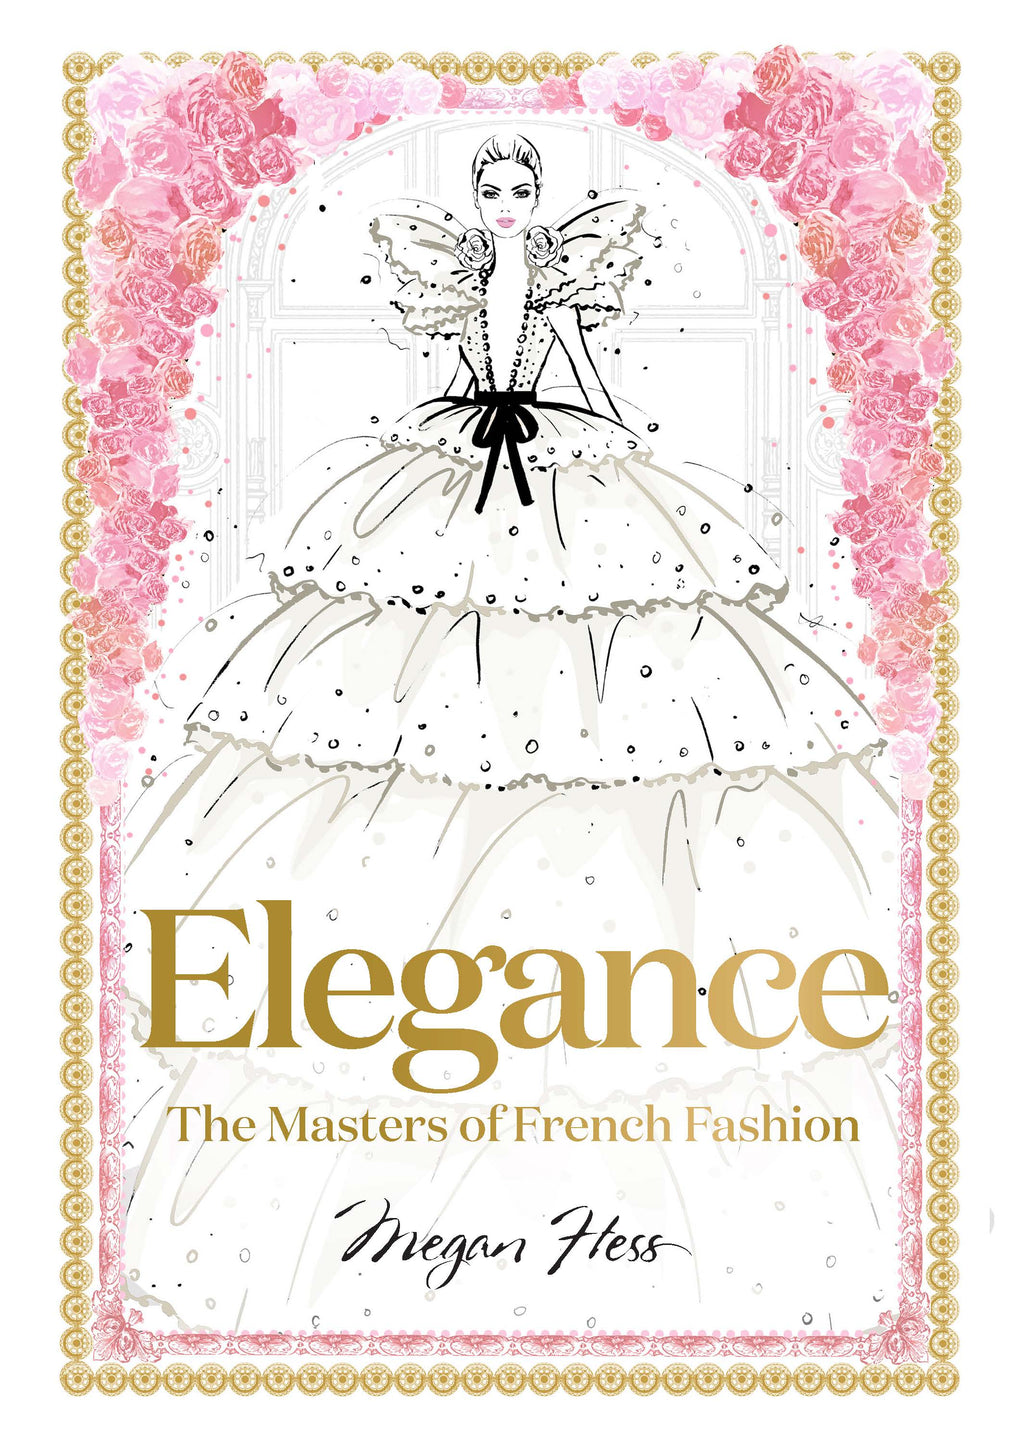 Elegance The Beauty of French Fashion - Megan Hess (4391777566804)